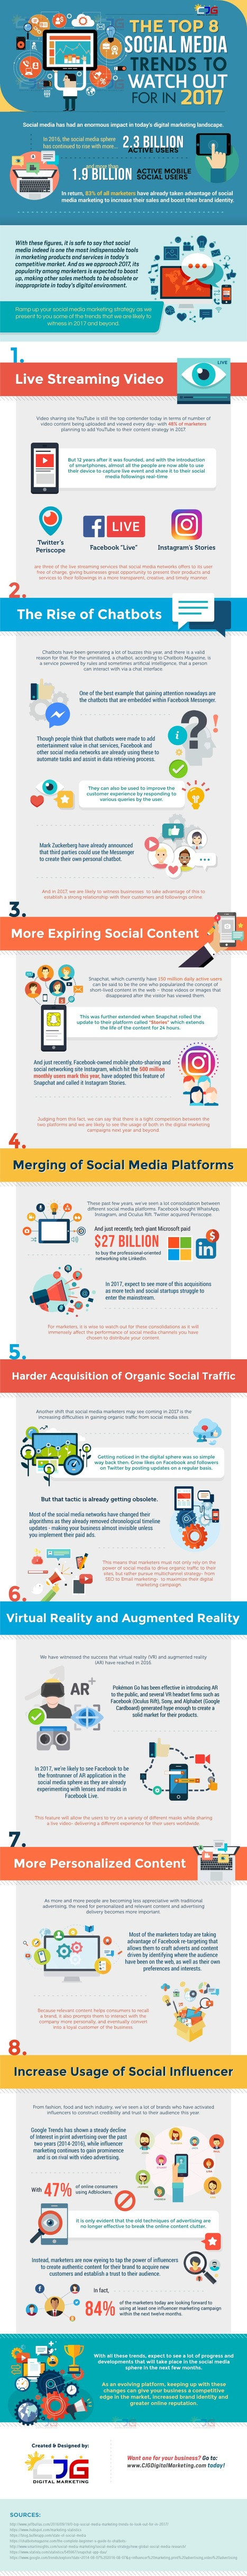 Five Trends Start-ups Should Embrace for Effective Social Media Marketing [Infographic] | CustomerThink | Integrated Brand Communications | Scoop.it